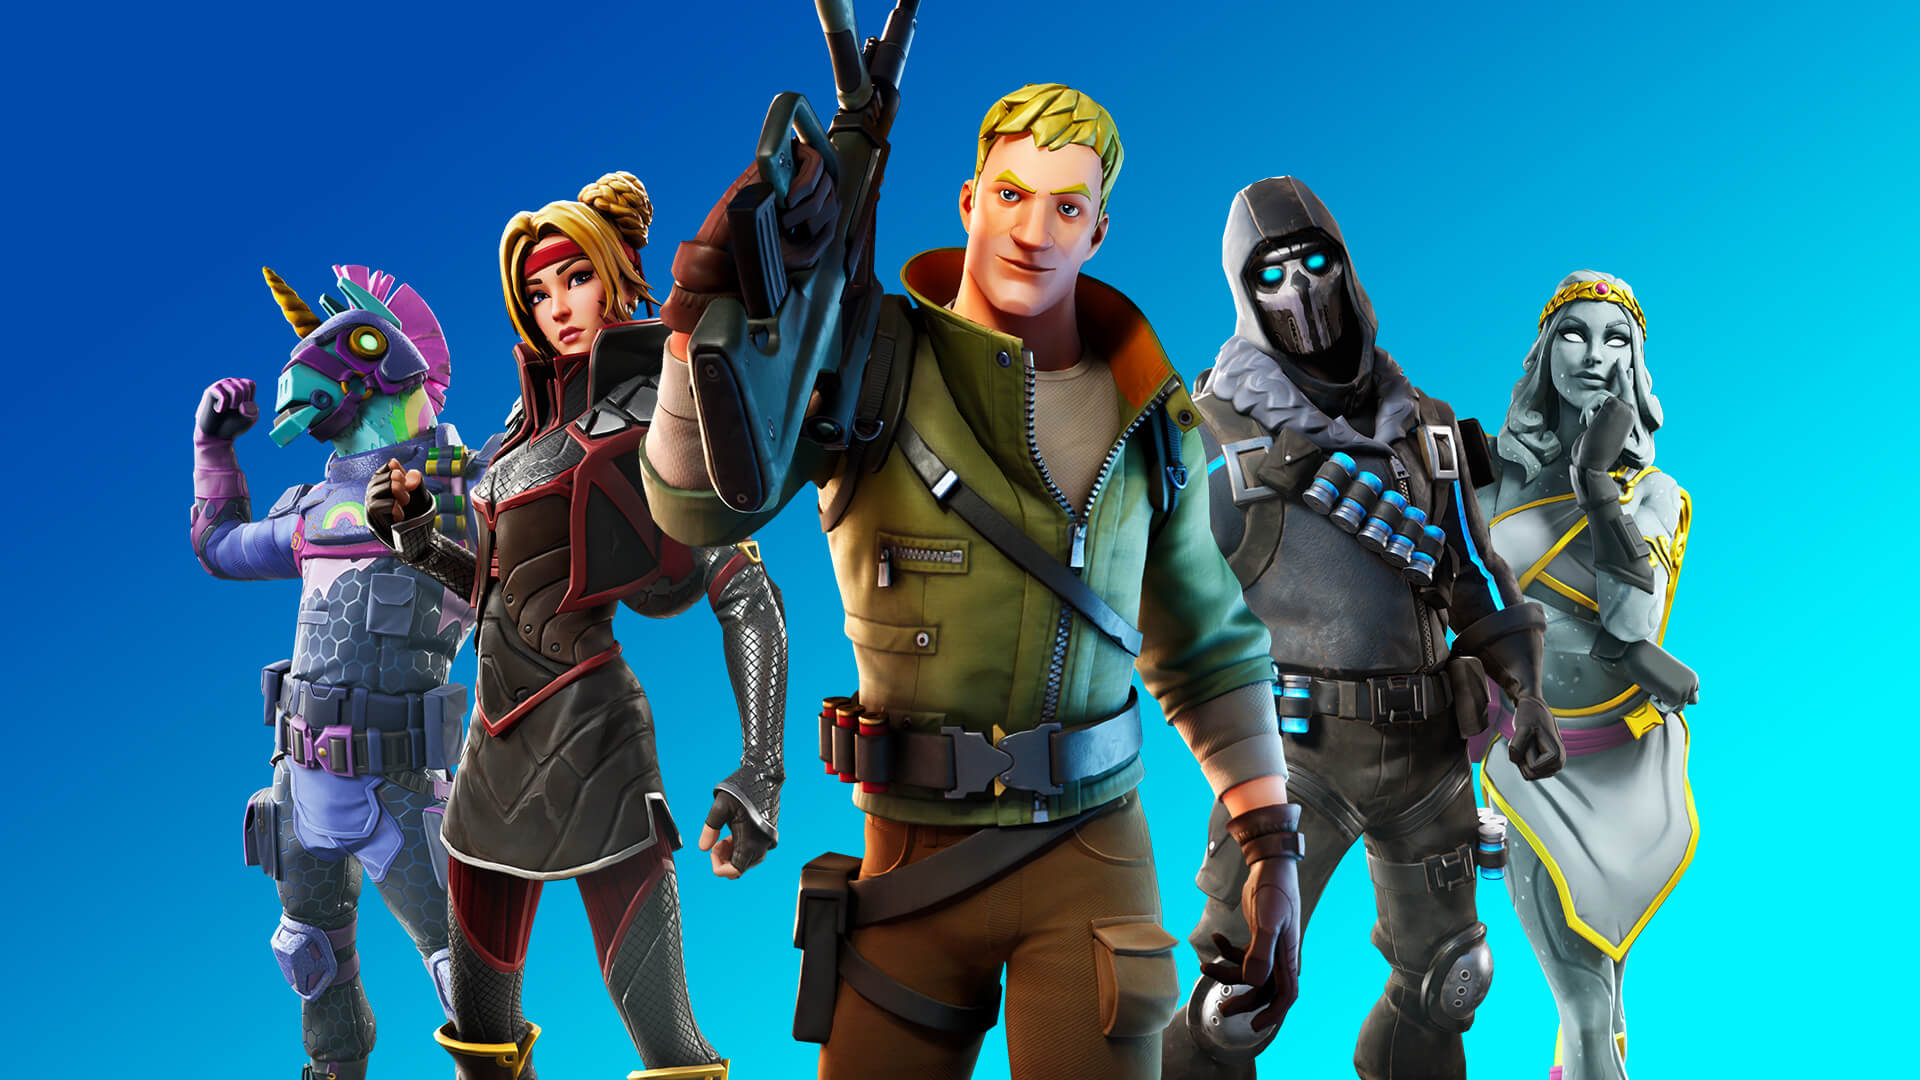 Fortnite Xbox An Unexpected Error Site Www.epicgames.com Fortnite How To Fix Error Client Out Of Date On Mobile